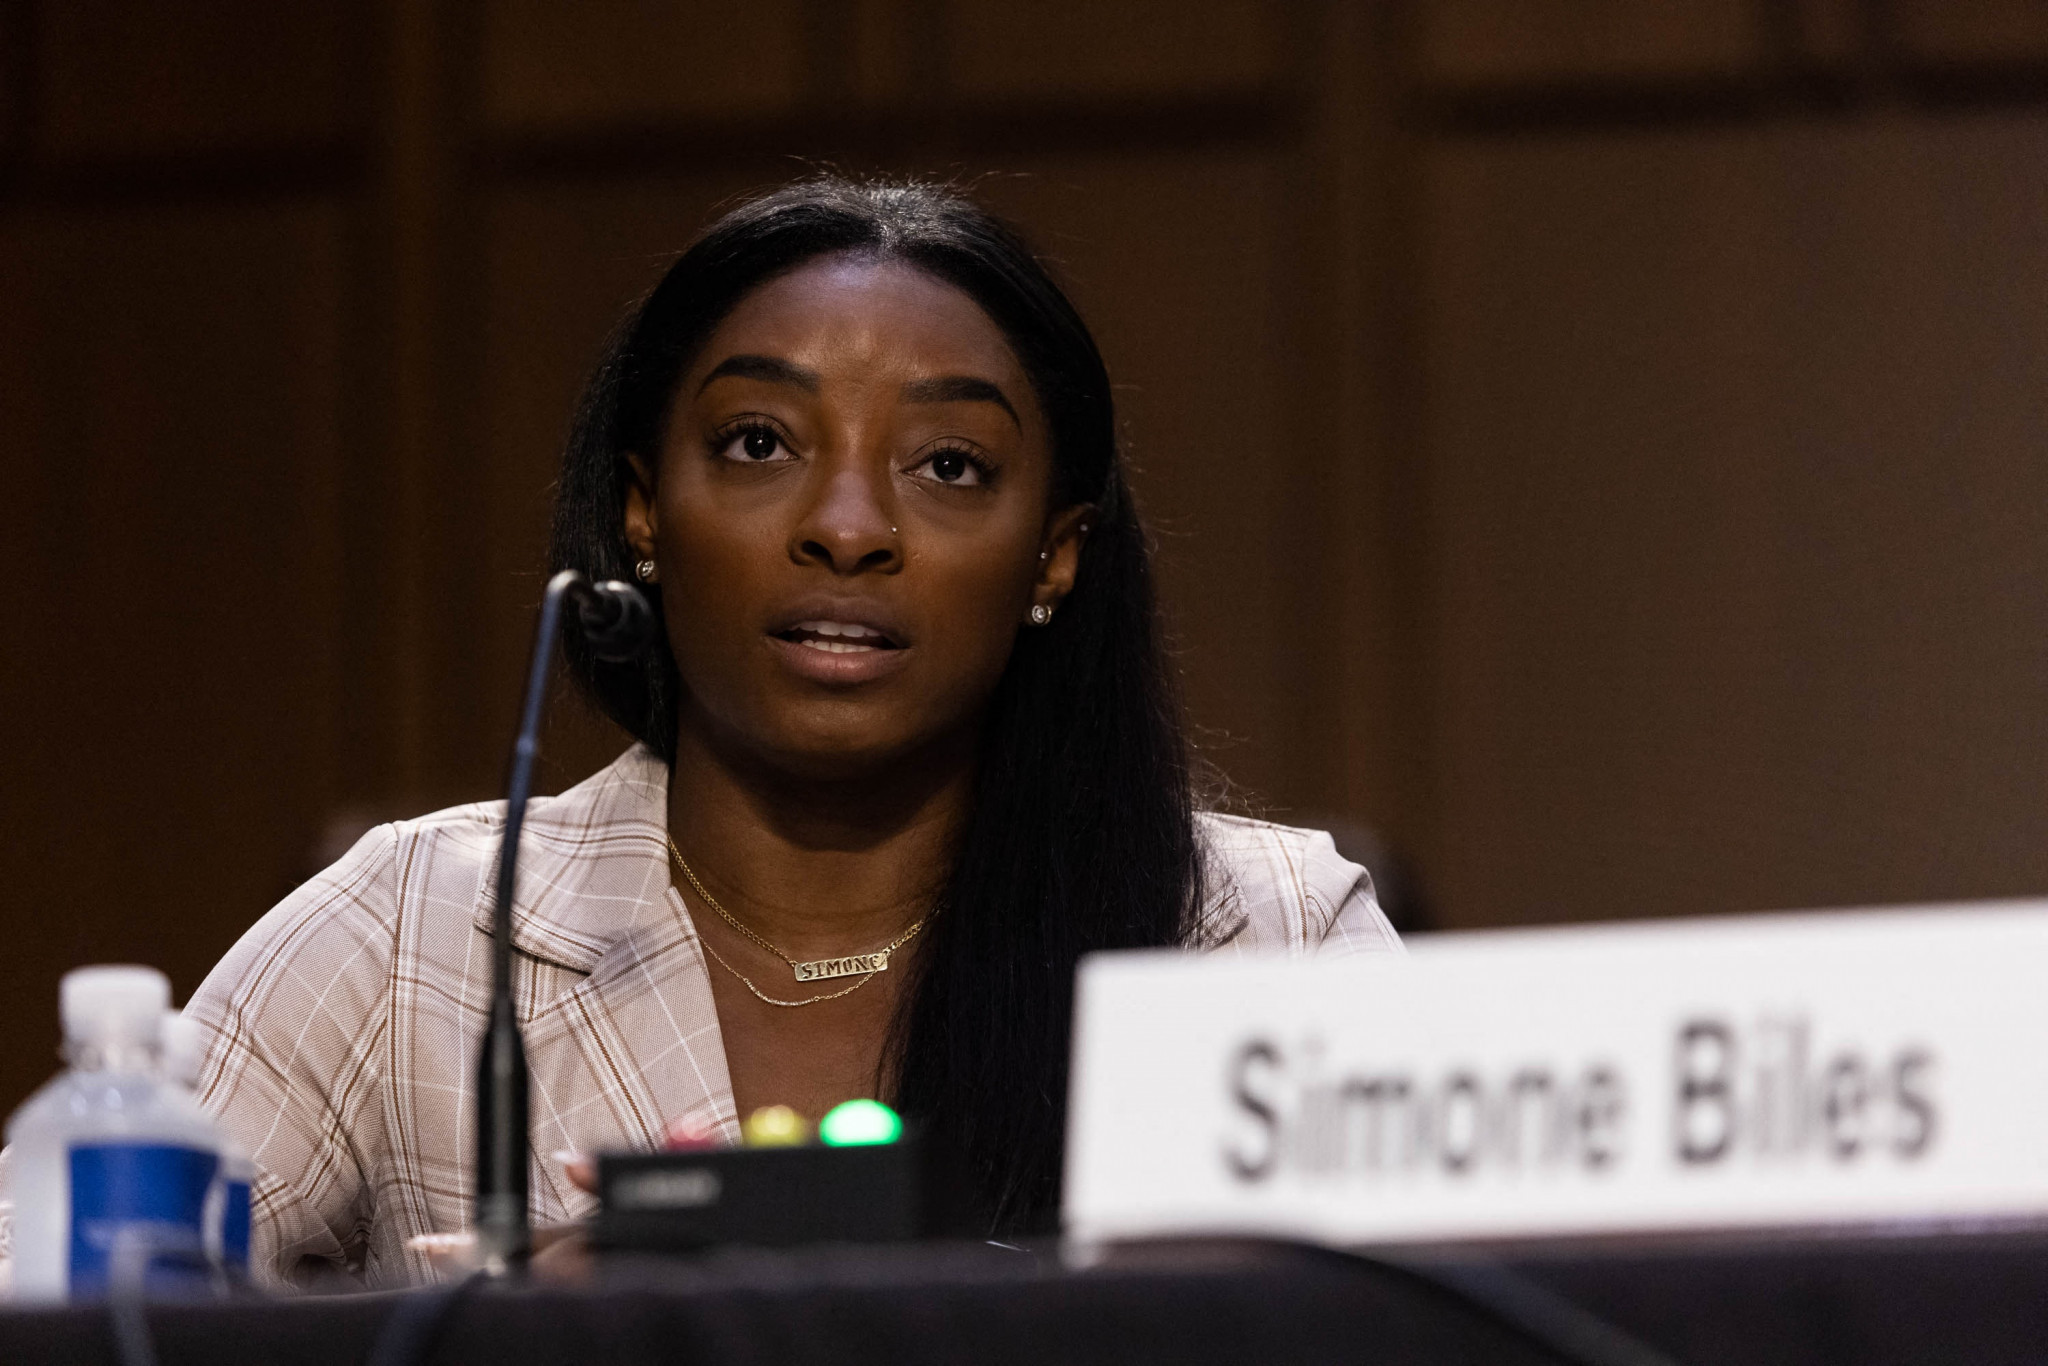 American star Simone Biles has repeatedly criticised USA Gymnastics for its handling of the Larry Nassar case ©Getty Images